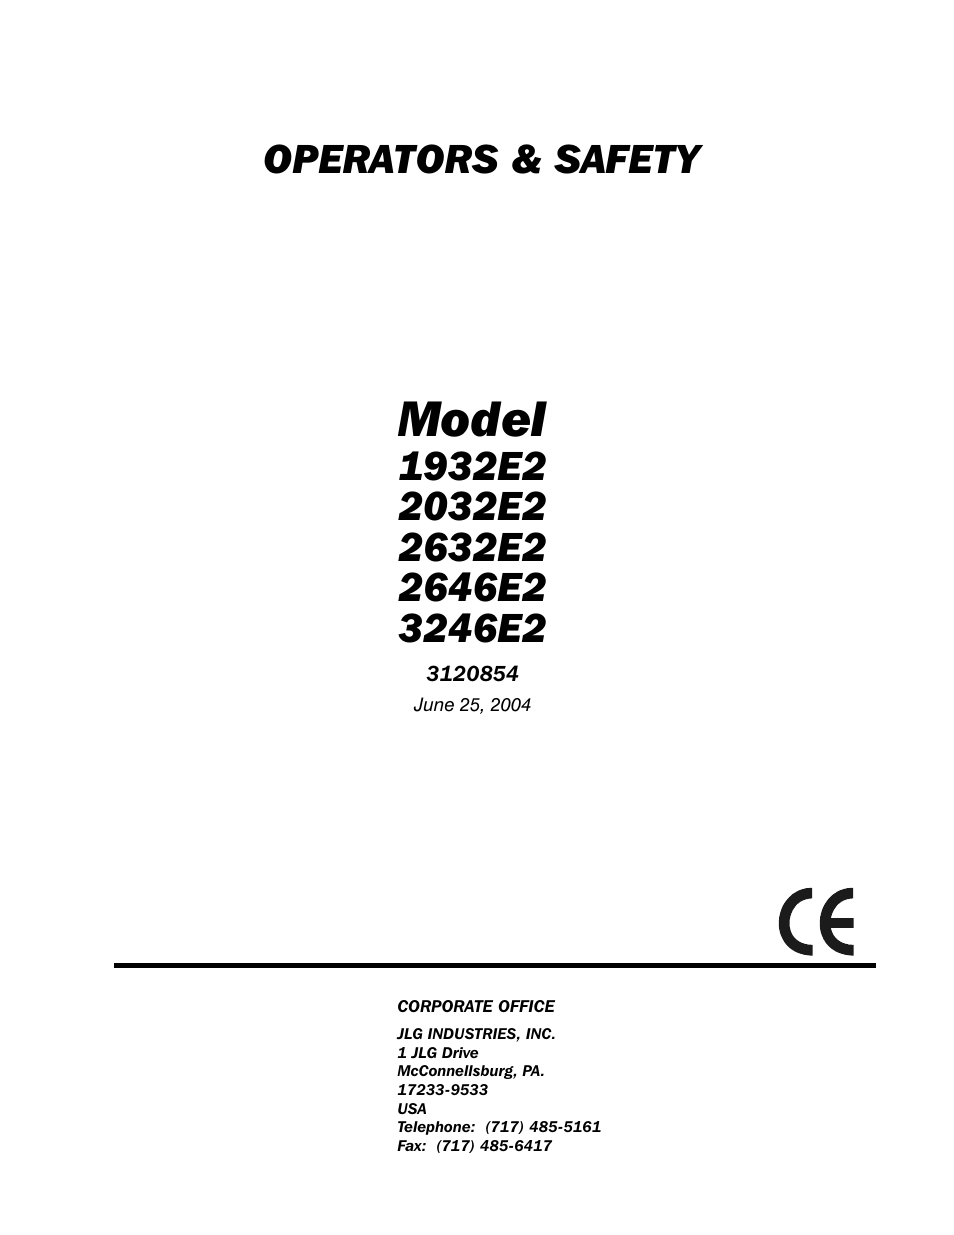 jlg 1932e2 wiring diagram wiring diagram Lesco Wiring Diagram